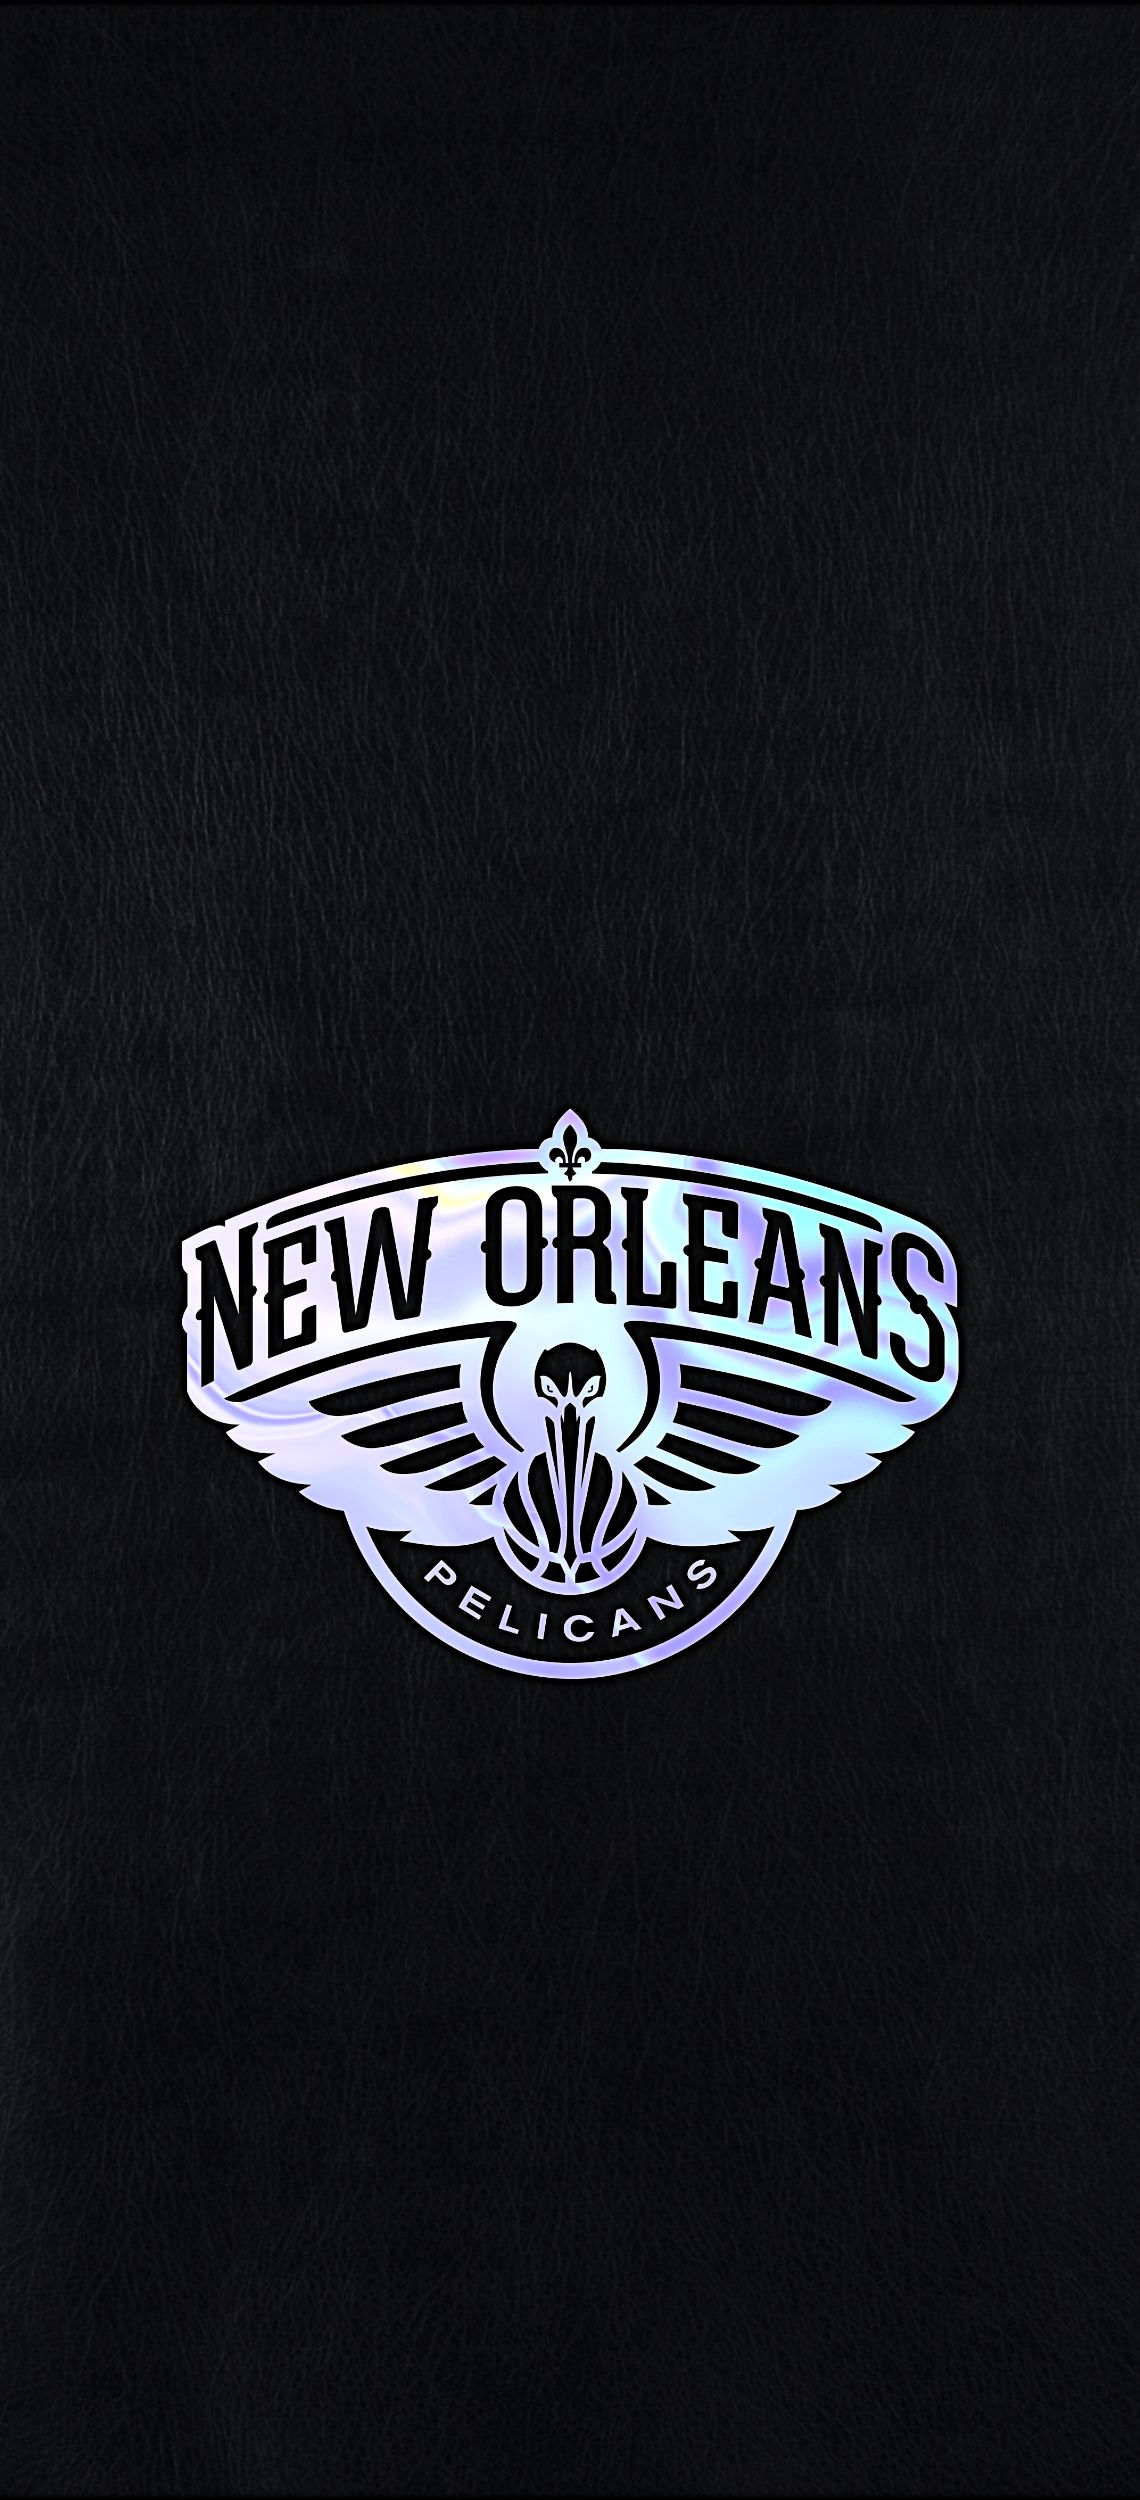 Nba Basketball Team New Orleans Pelicans Phone Background